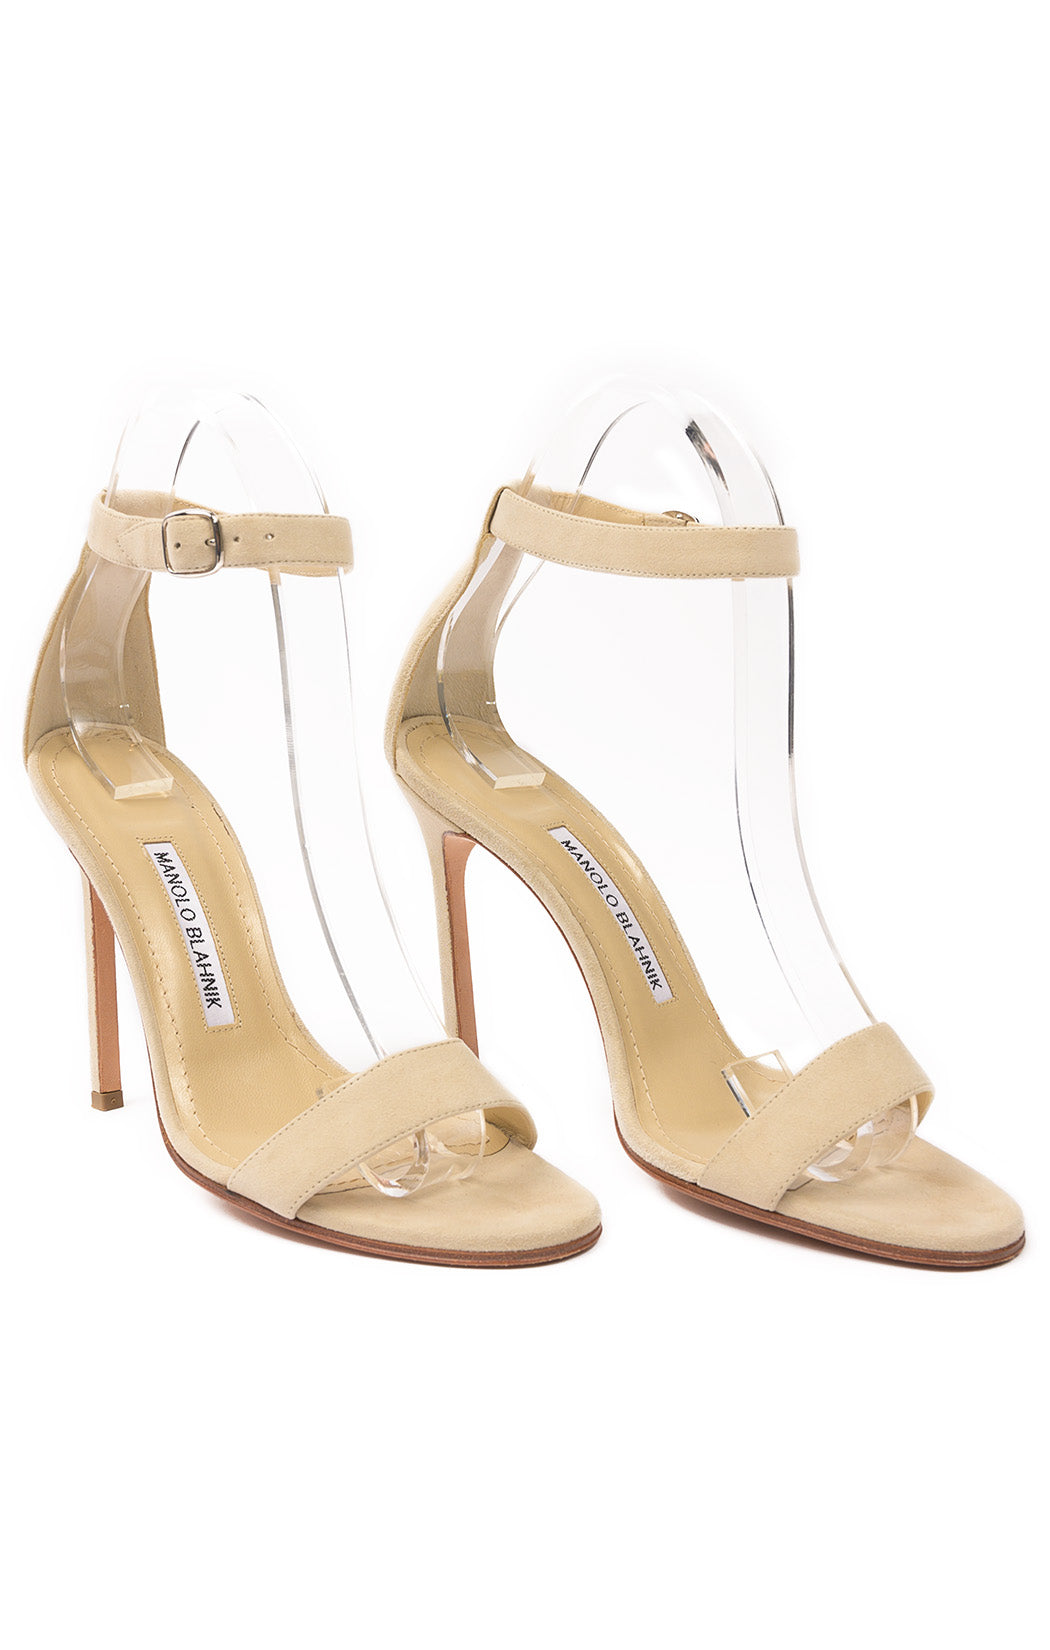 Front view of MANOLO BLAHNIK  Sandals Size: 37 / 7